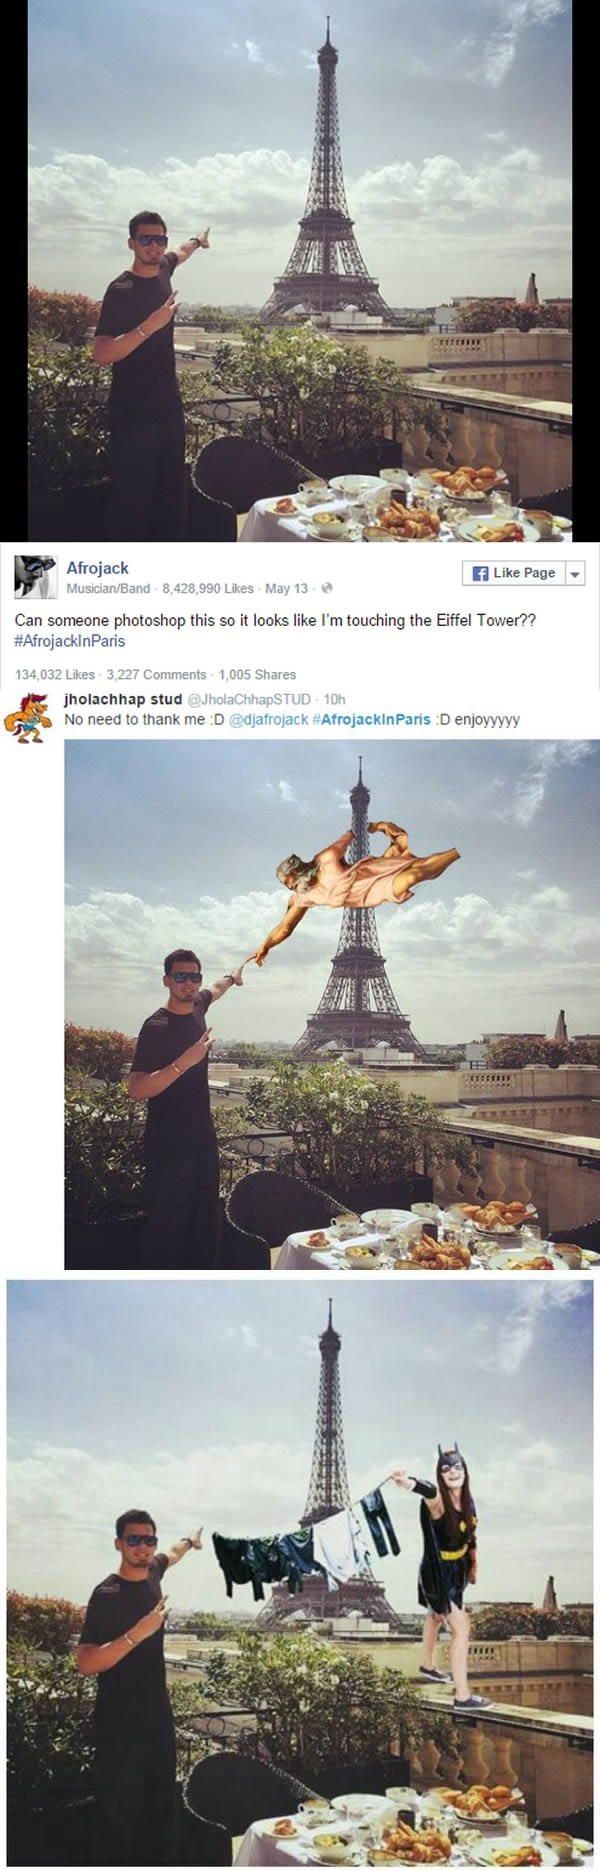 Photograph - Afrojack f Like Page Musician/Band 8,428,990 Likes May 13 Can someone photoshop this so it looks like I'm touching the Eiffel Tower?? #AfrojacklnParis 134,032 Likes 3,227 Comments 1,005 Shares jholachhap stud @JholaChhapSTUD 10h No need to thank me :D @djafrojack #AfrojacklnParis D enjoyyyyy D